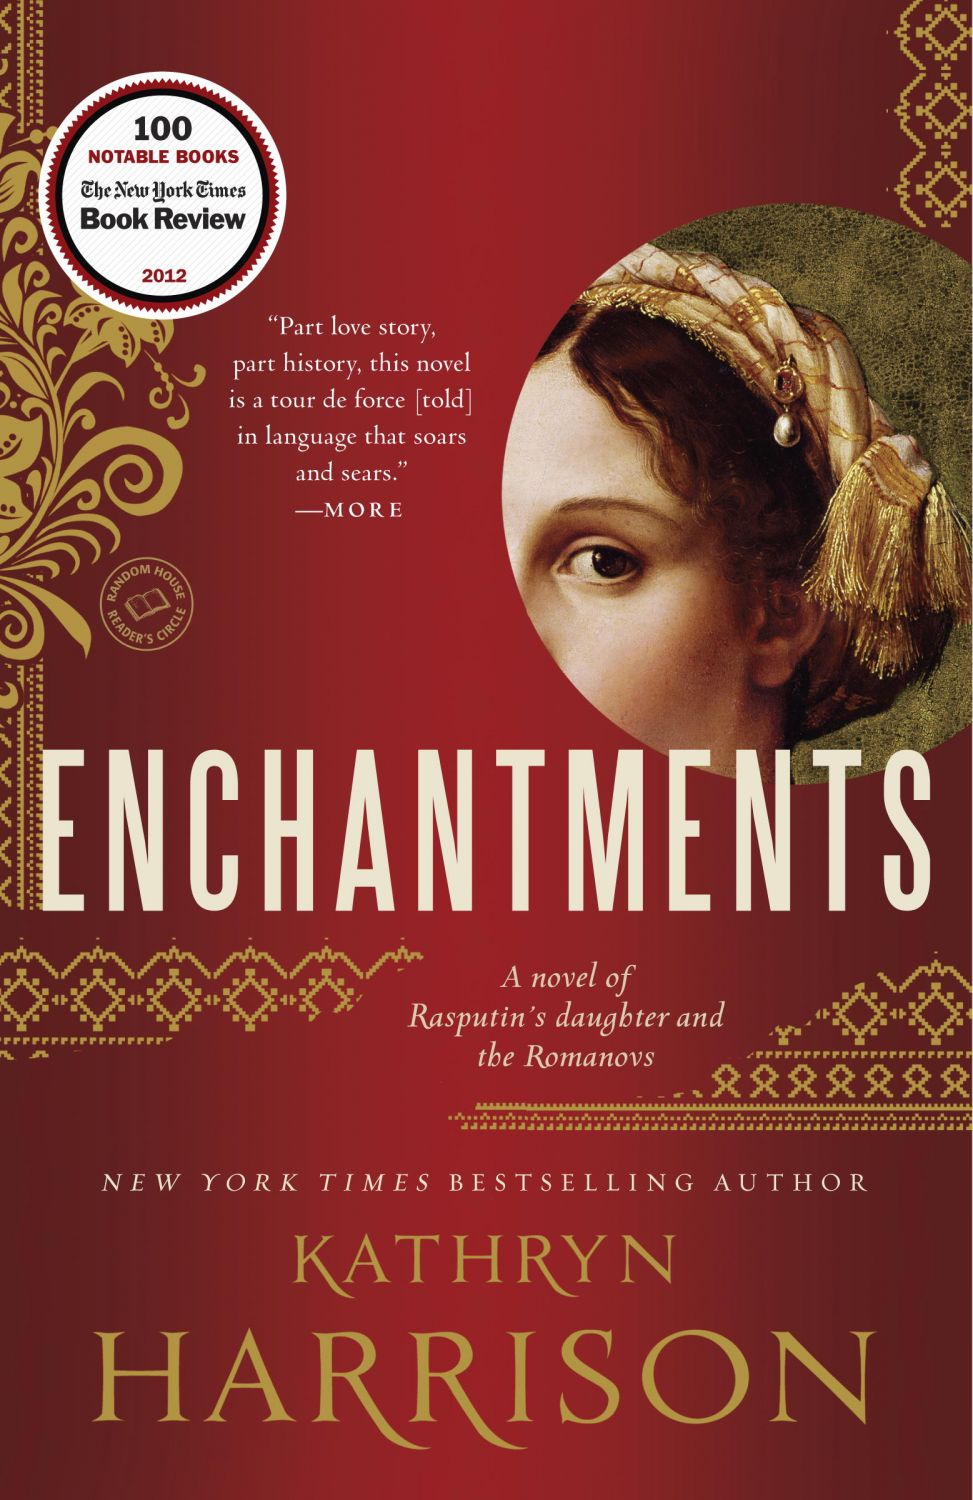 About Enchantments: A Novel Of Rasputin's Daughter And The Romanovs